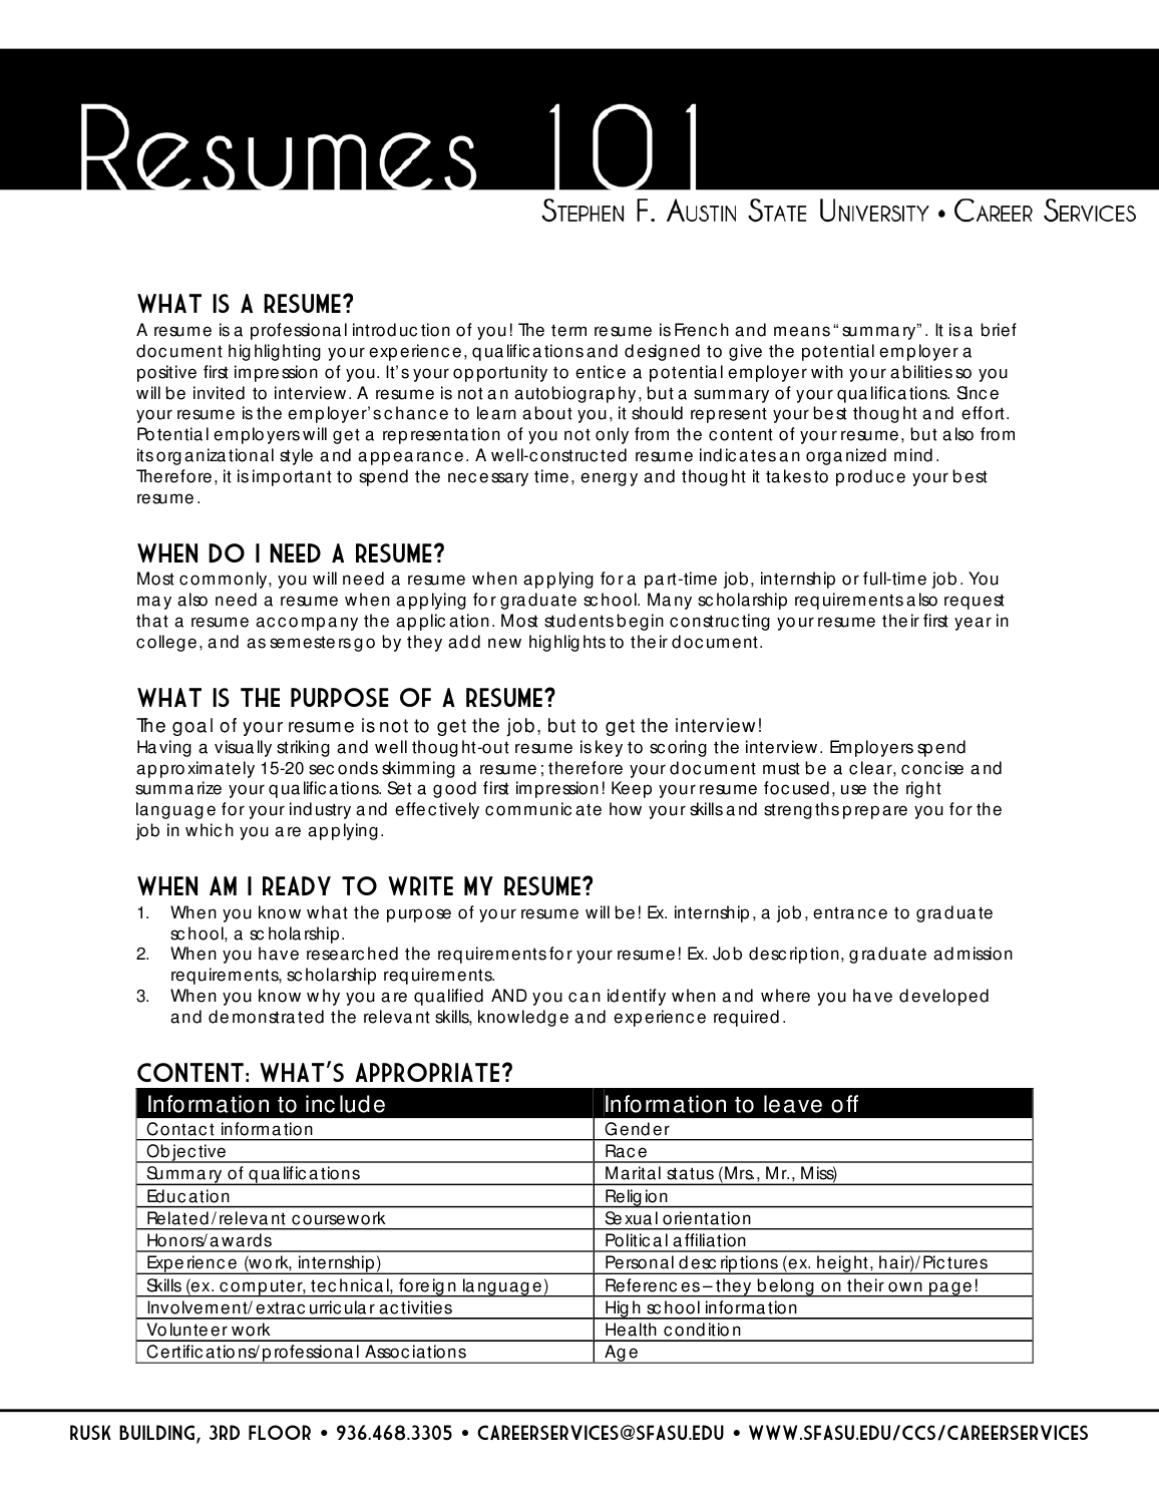 Resume 101 By Sfa Careers Issuu